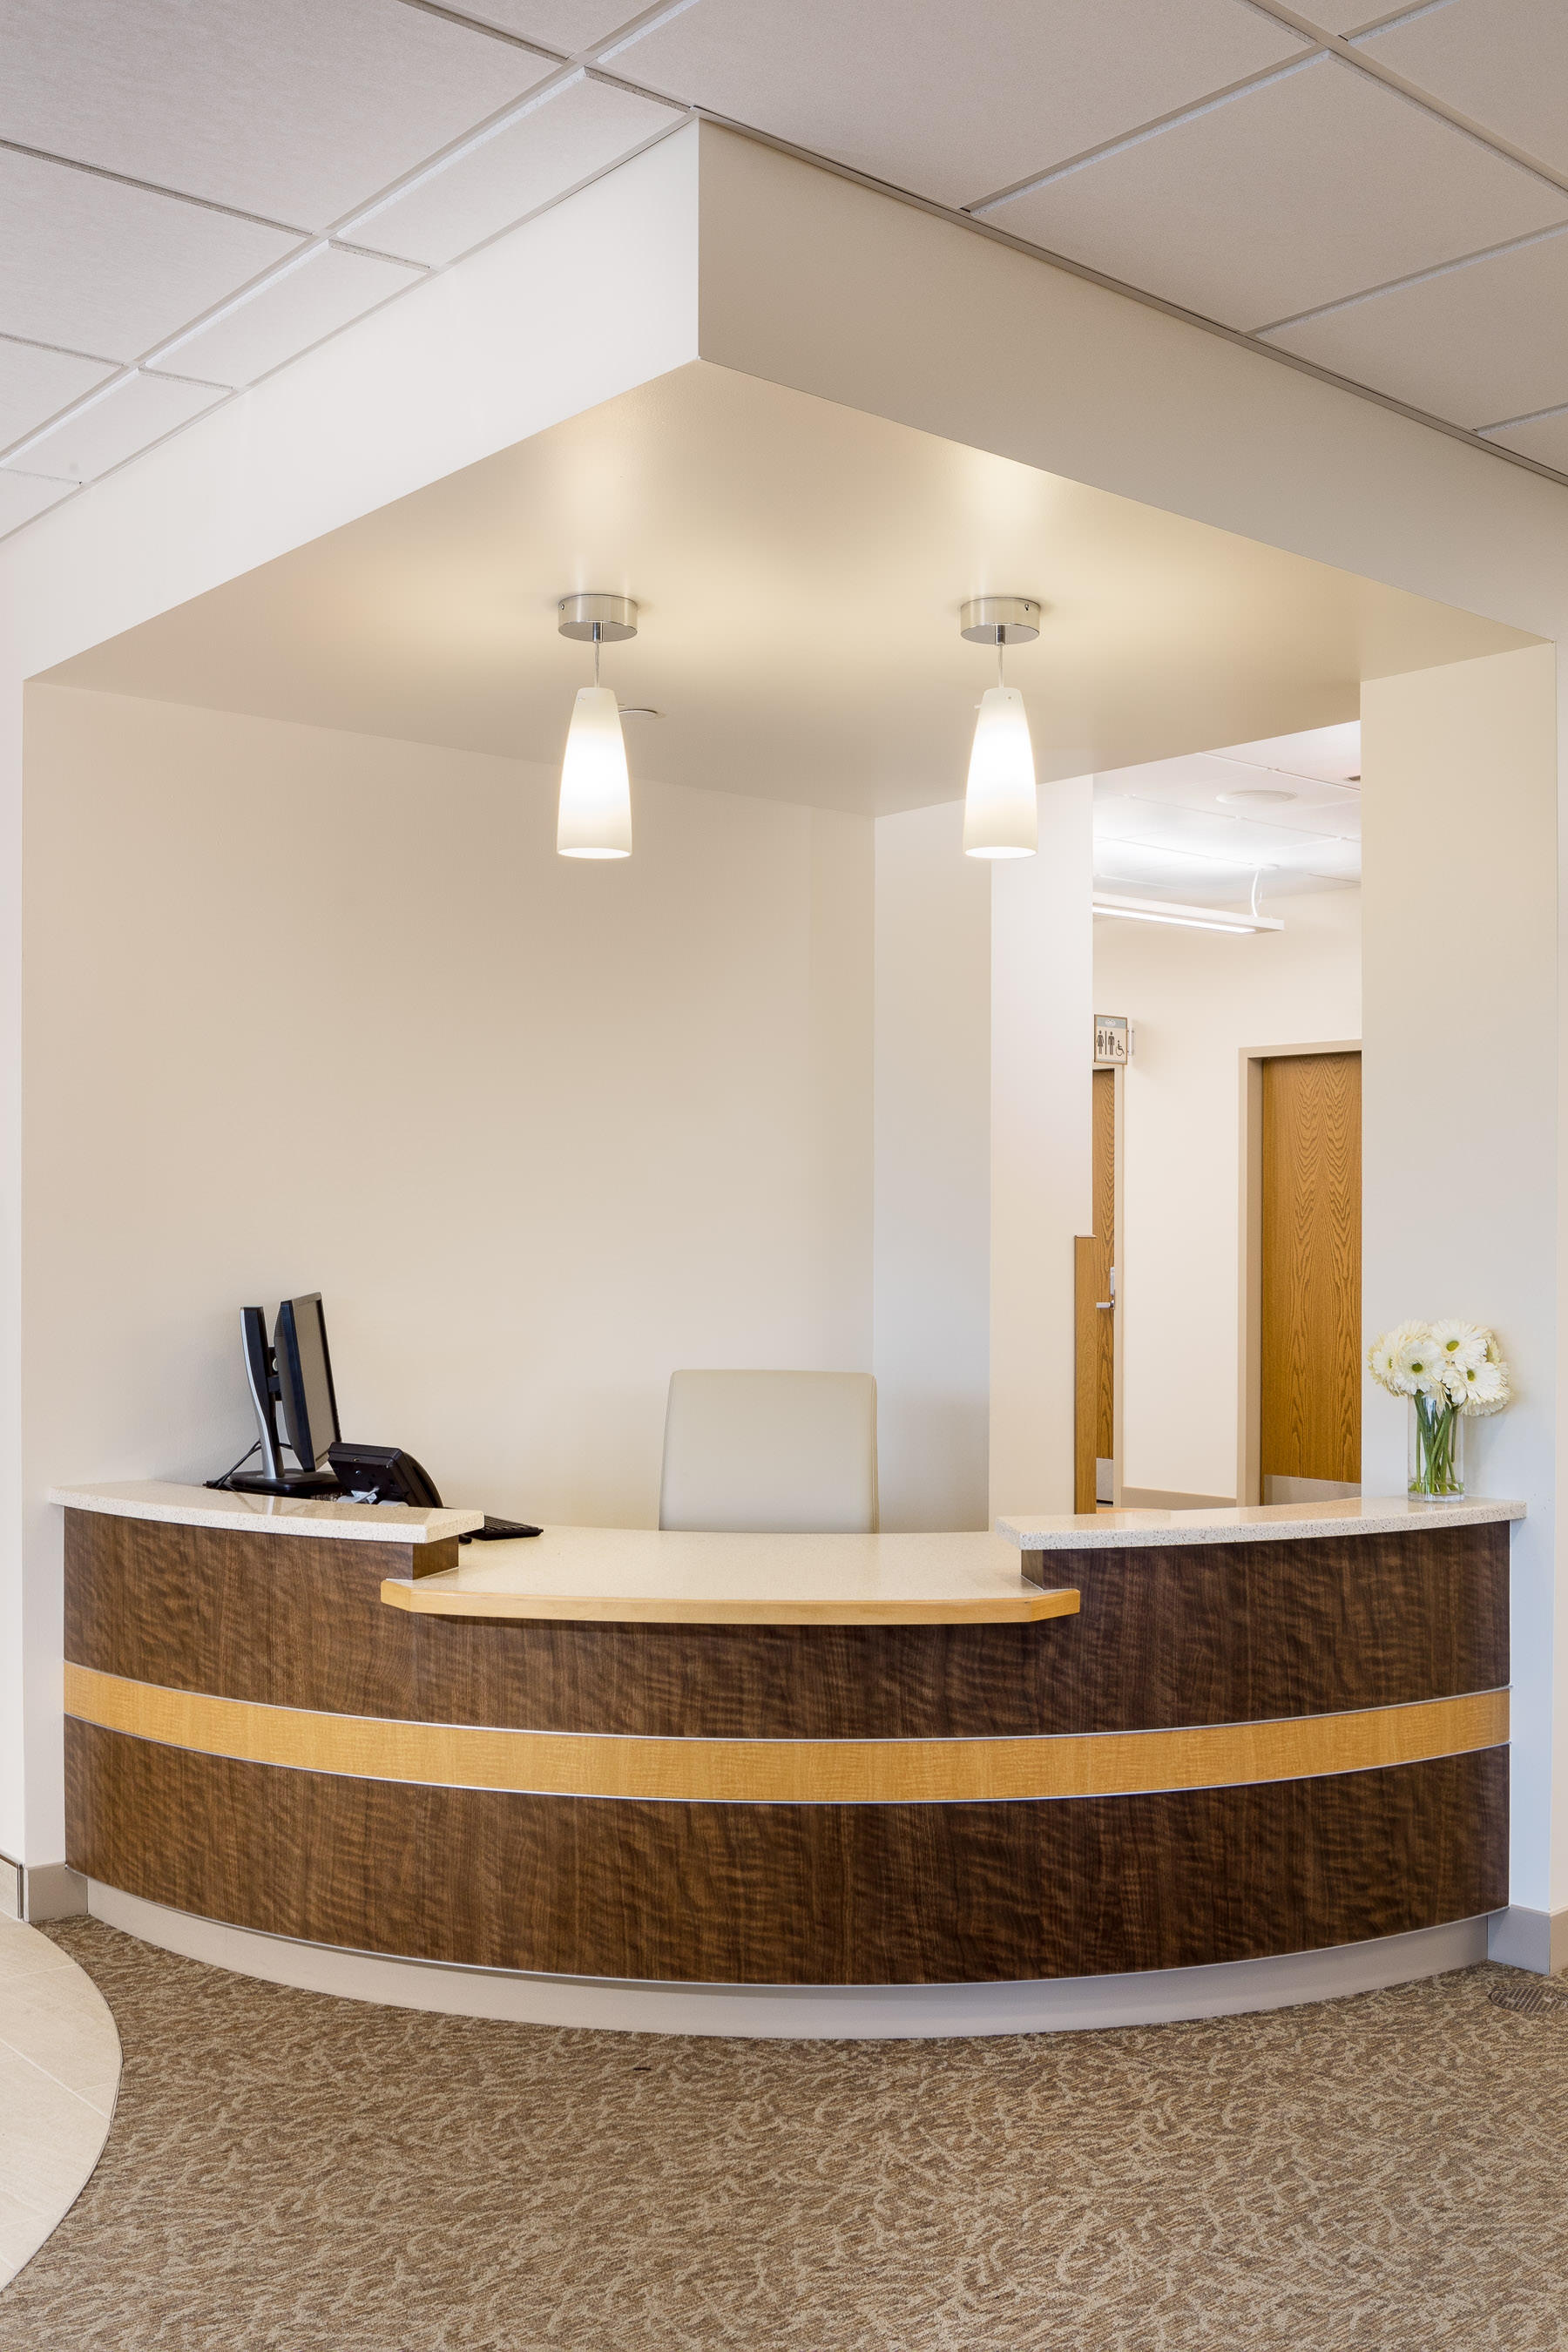 A photo of the lobby kiosk in Northwestern Medical Center's Medical Office Building in St. Albans Vermont by professional photographer Stina Booth